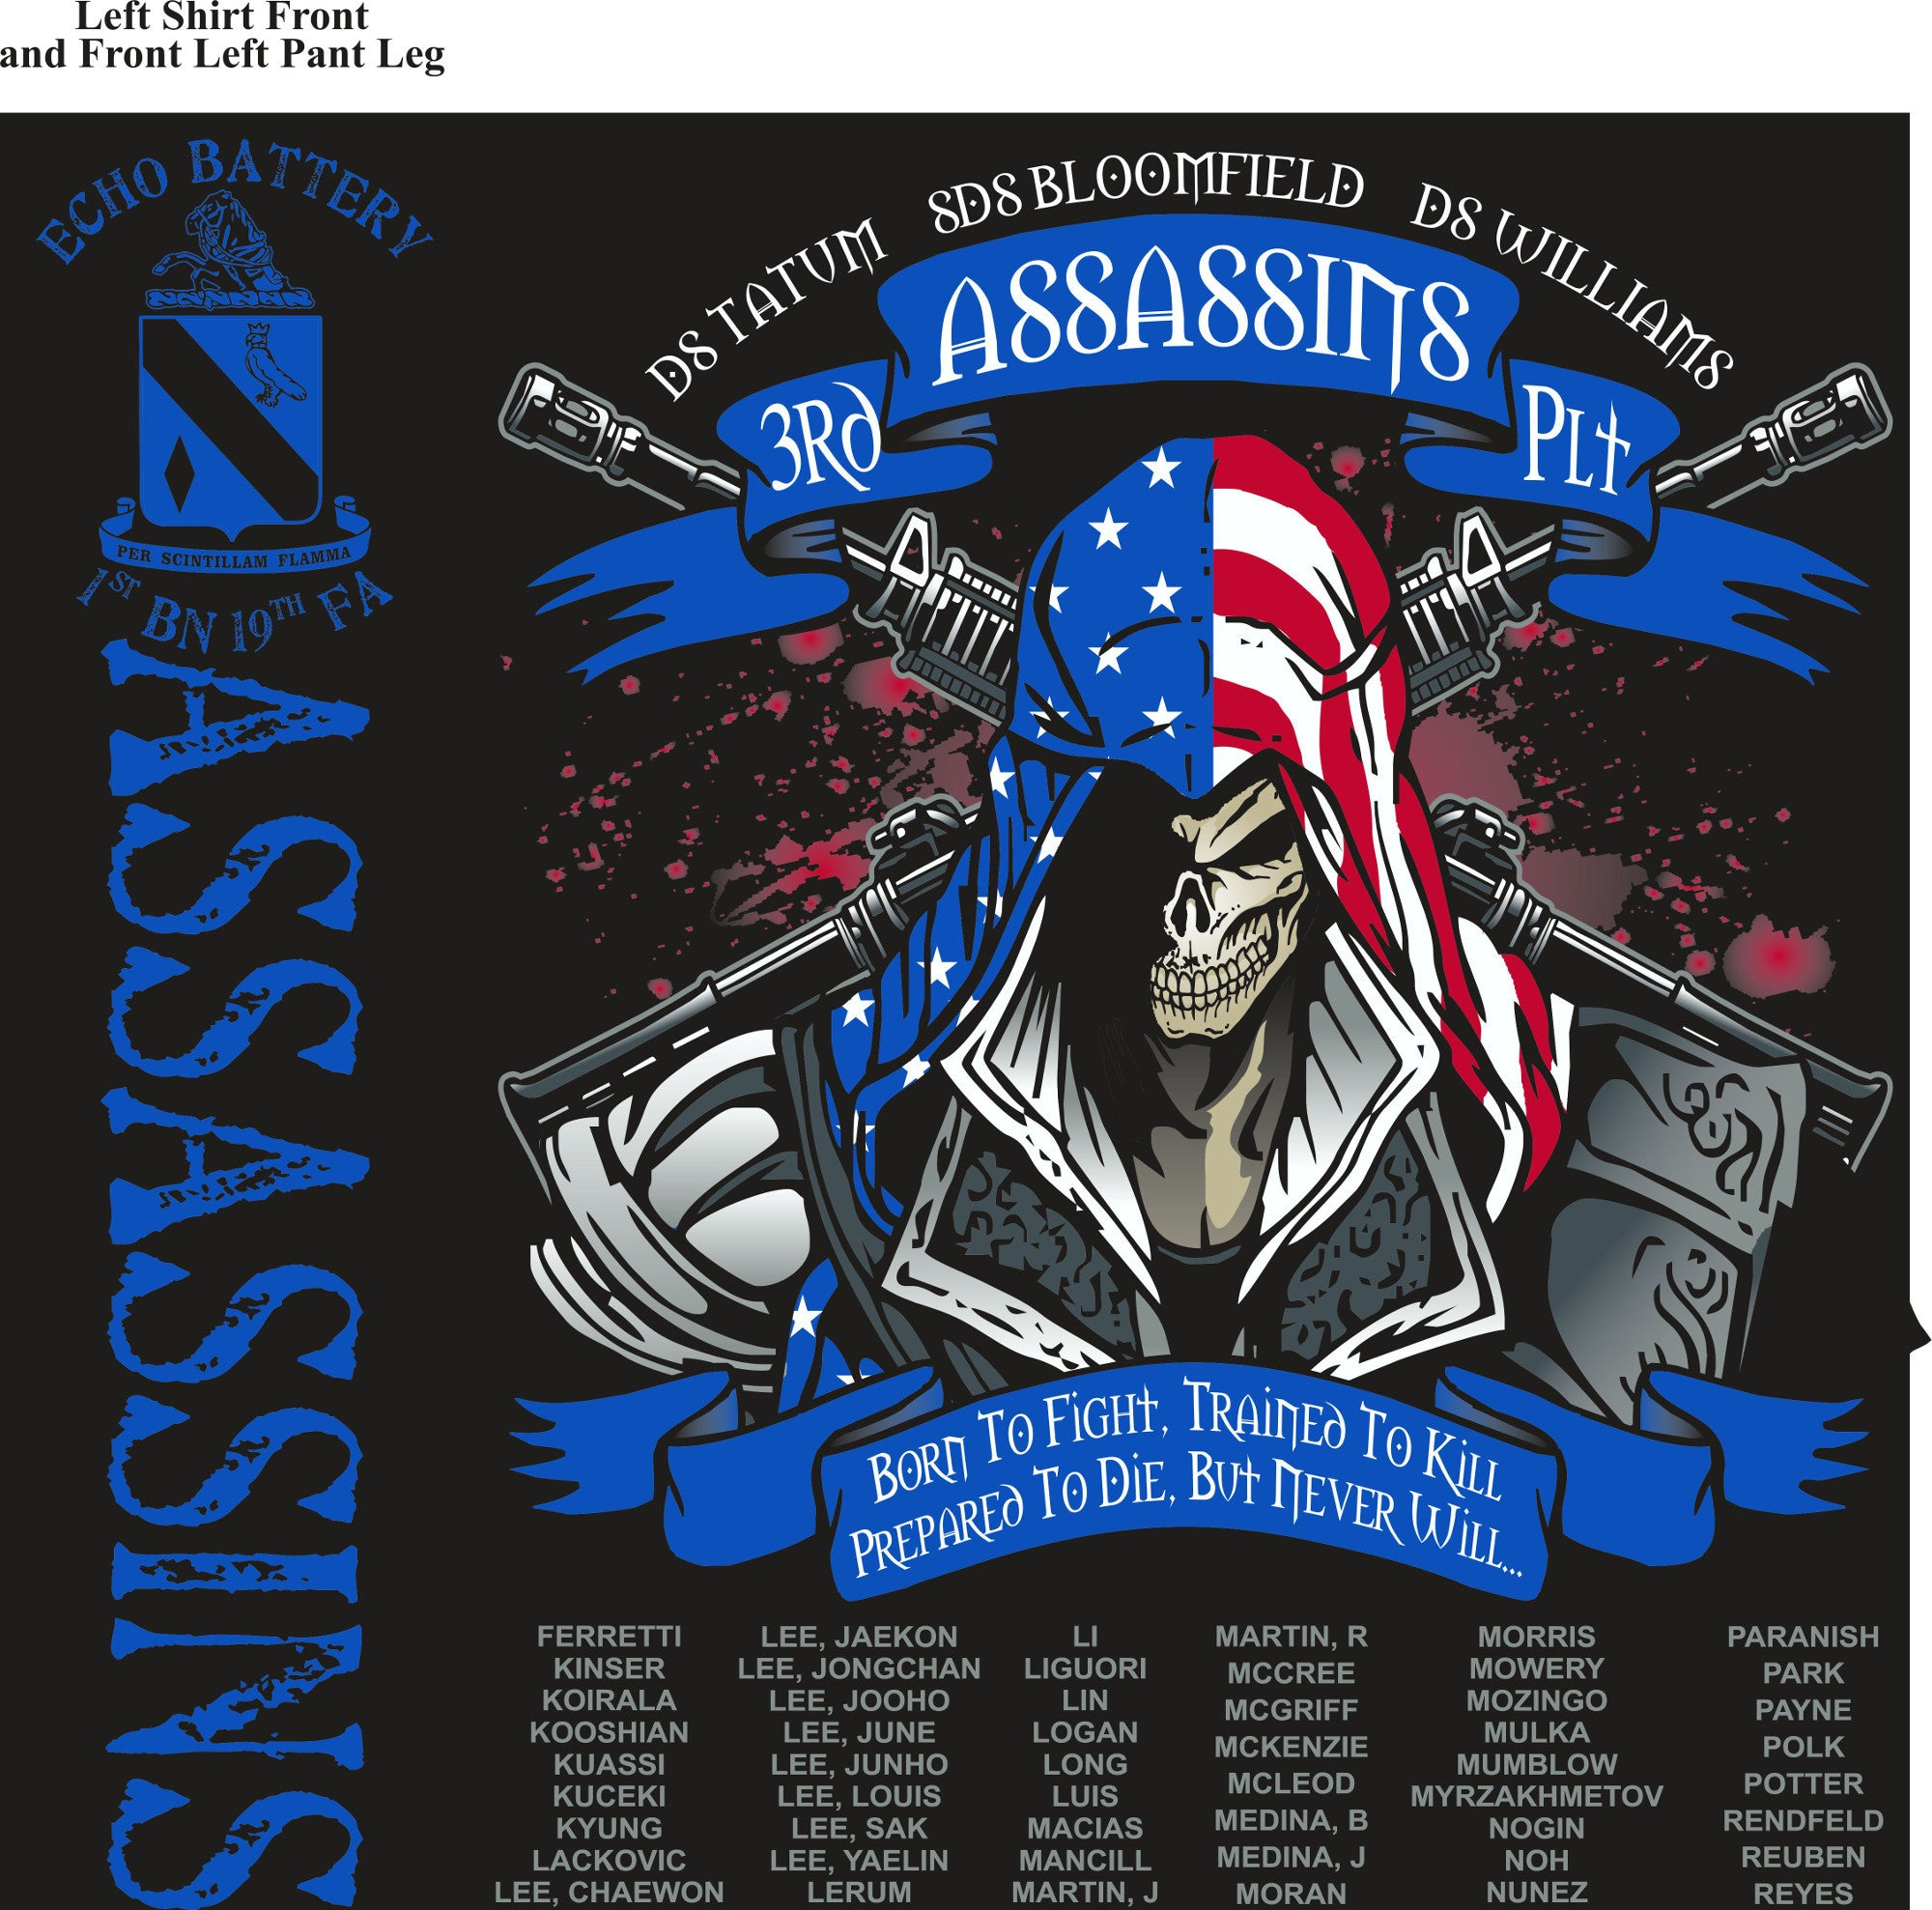 PLATOON SHIRTS (2nd generation print) ECHO 1st 19th ASSASSINS JULY 2016